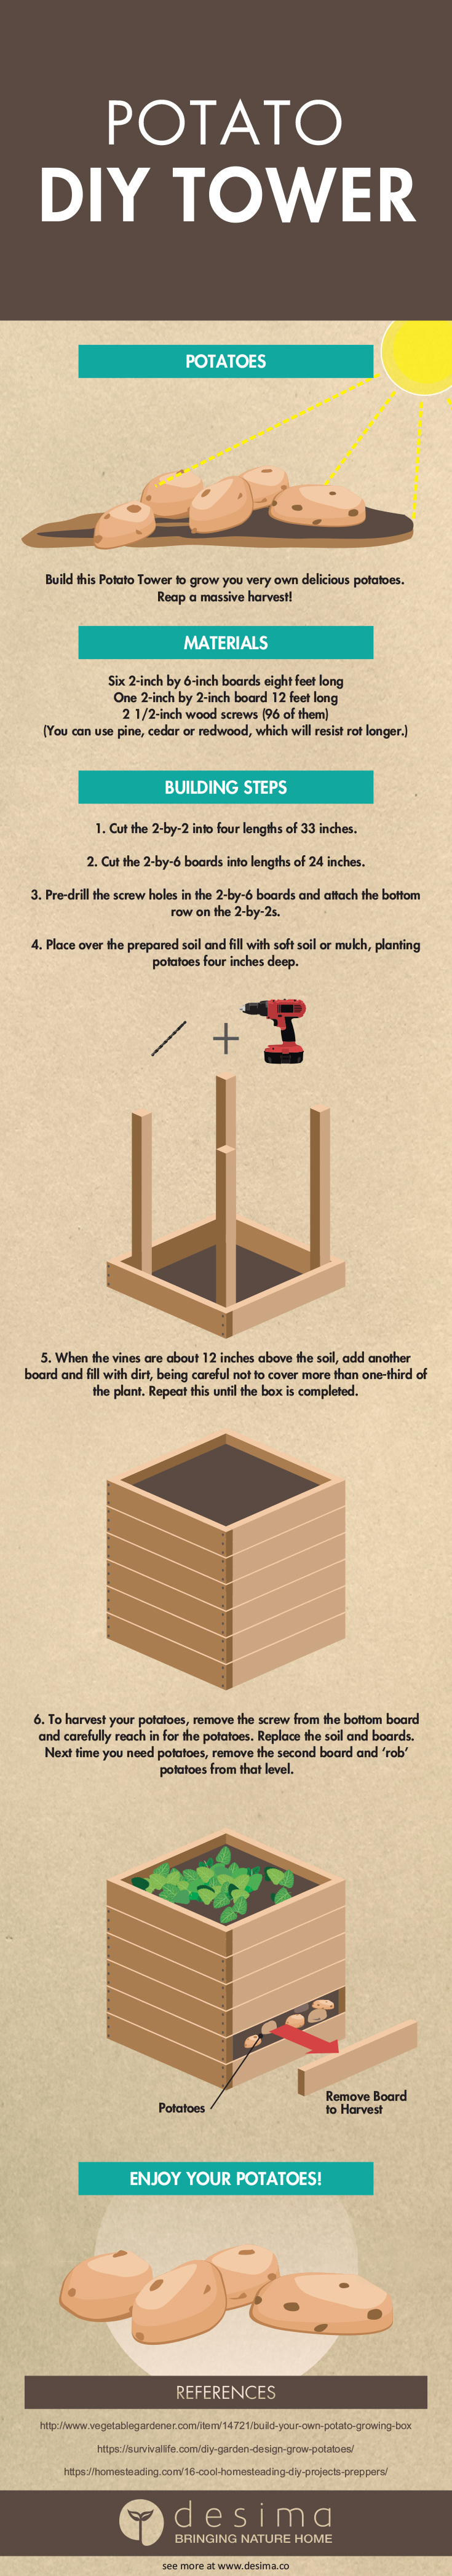 Potato DIY Tower Infographic